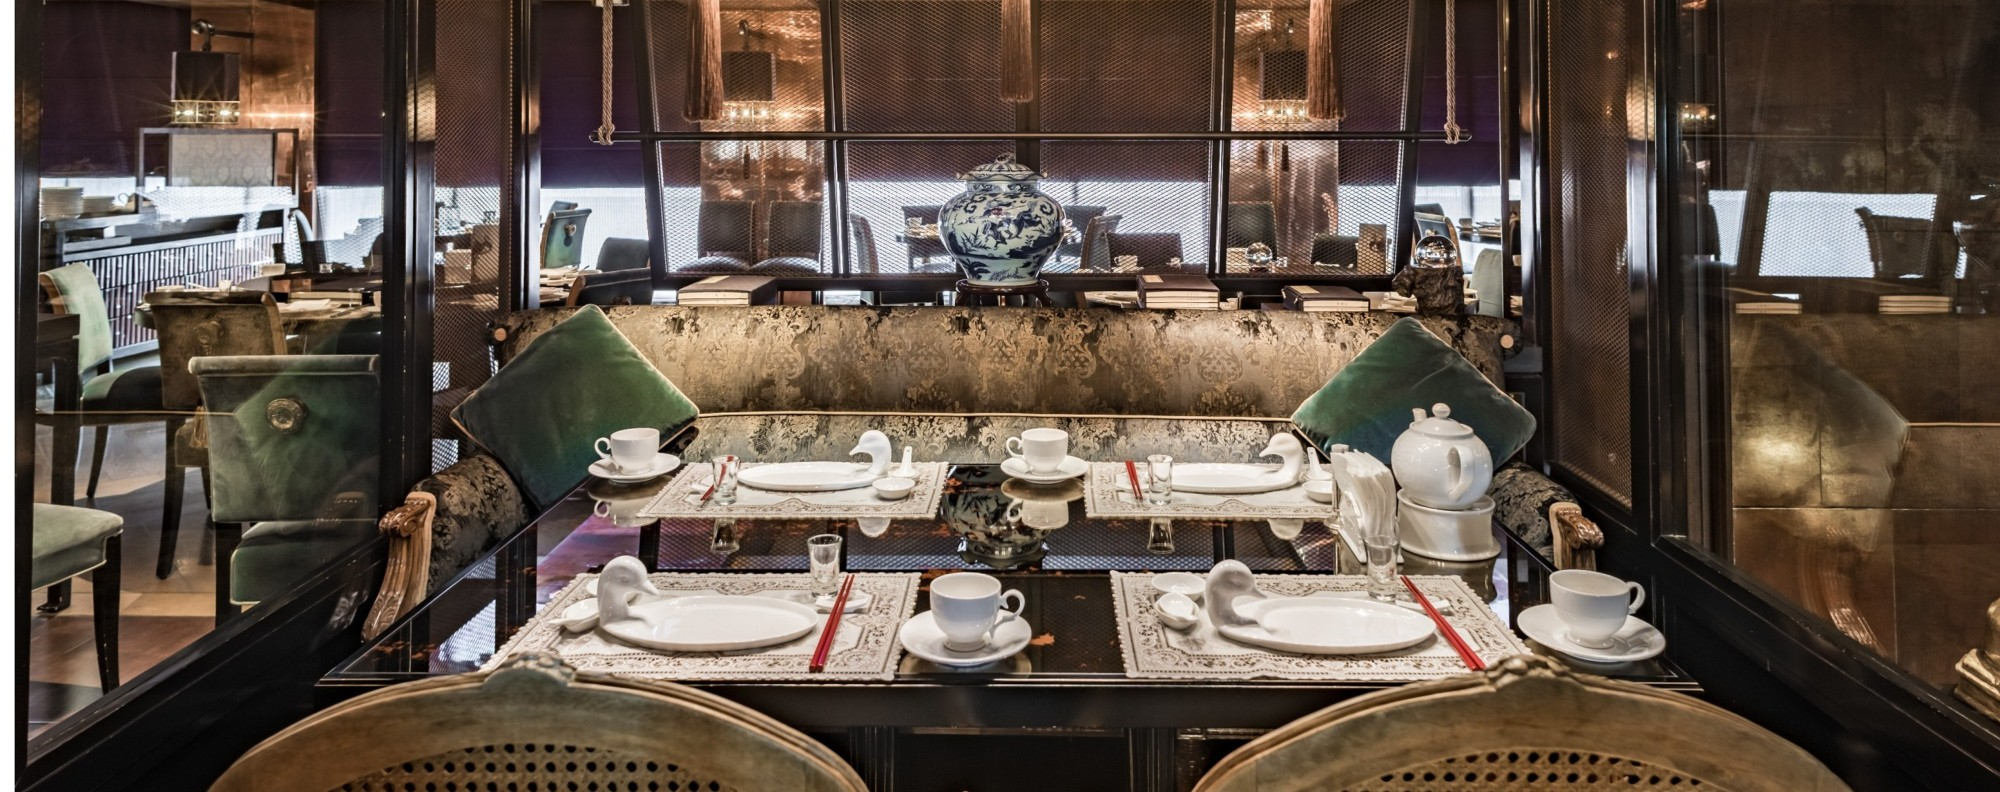 The 'castle glam' interiors of Le Palais, in Taiwan. Picture: Le Palais